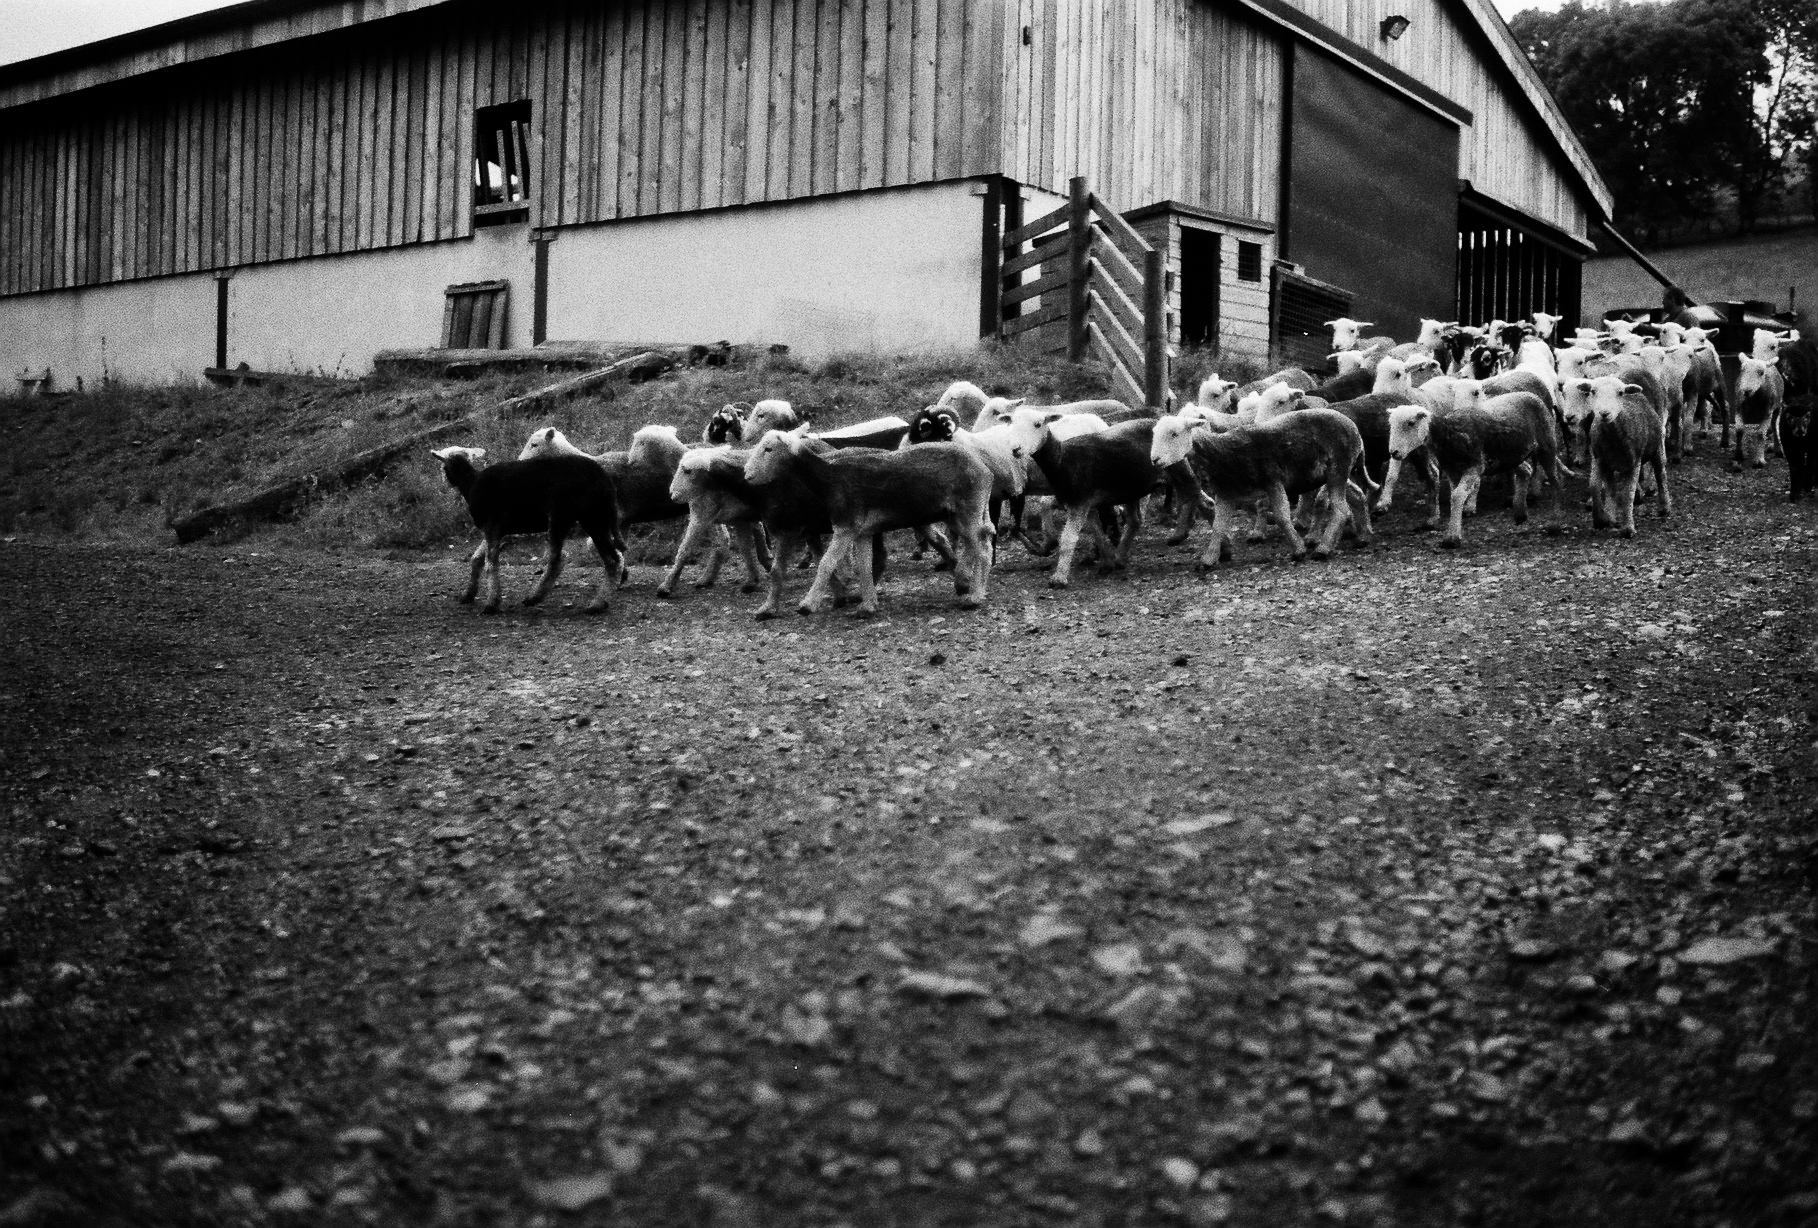 Once all sheep in the barn are clipped, they are released into the fields, before the next group are brought in and the process repeats.